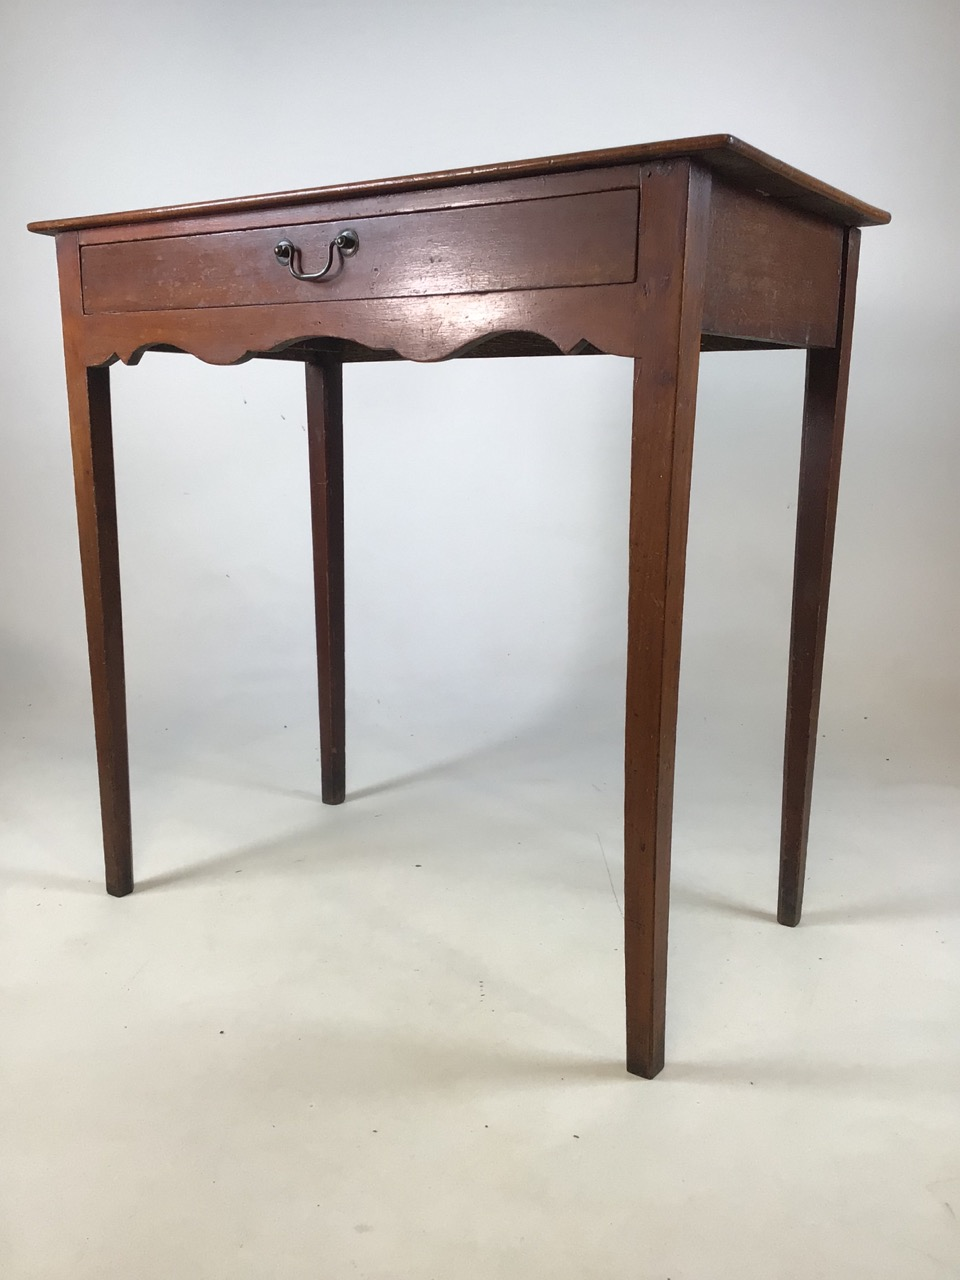 Small antique Georgian style side table with tapered legs with large central drawers and brass - Image 2 of 8